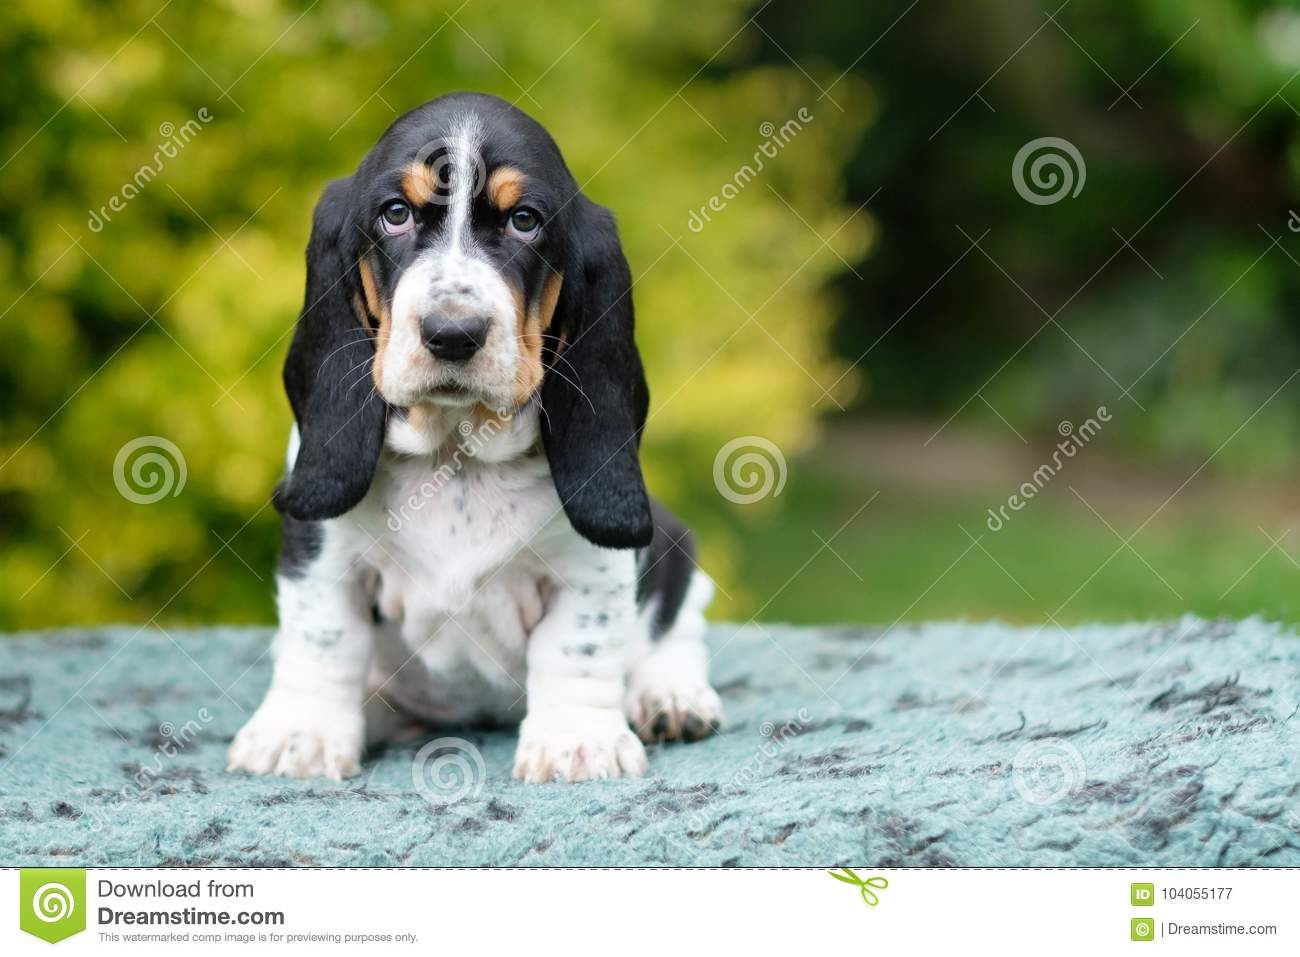 Sad young basset hound puppy looks right into the camera